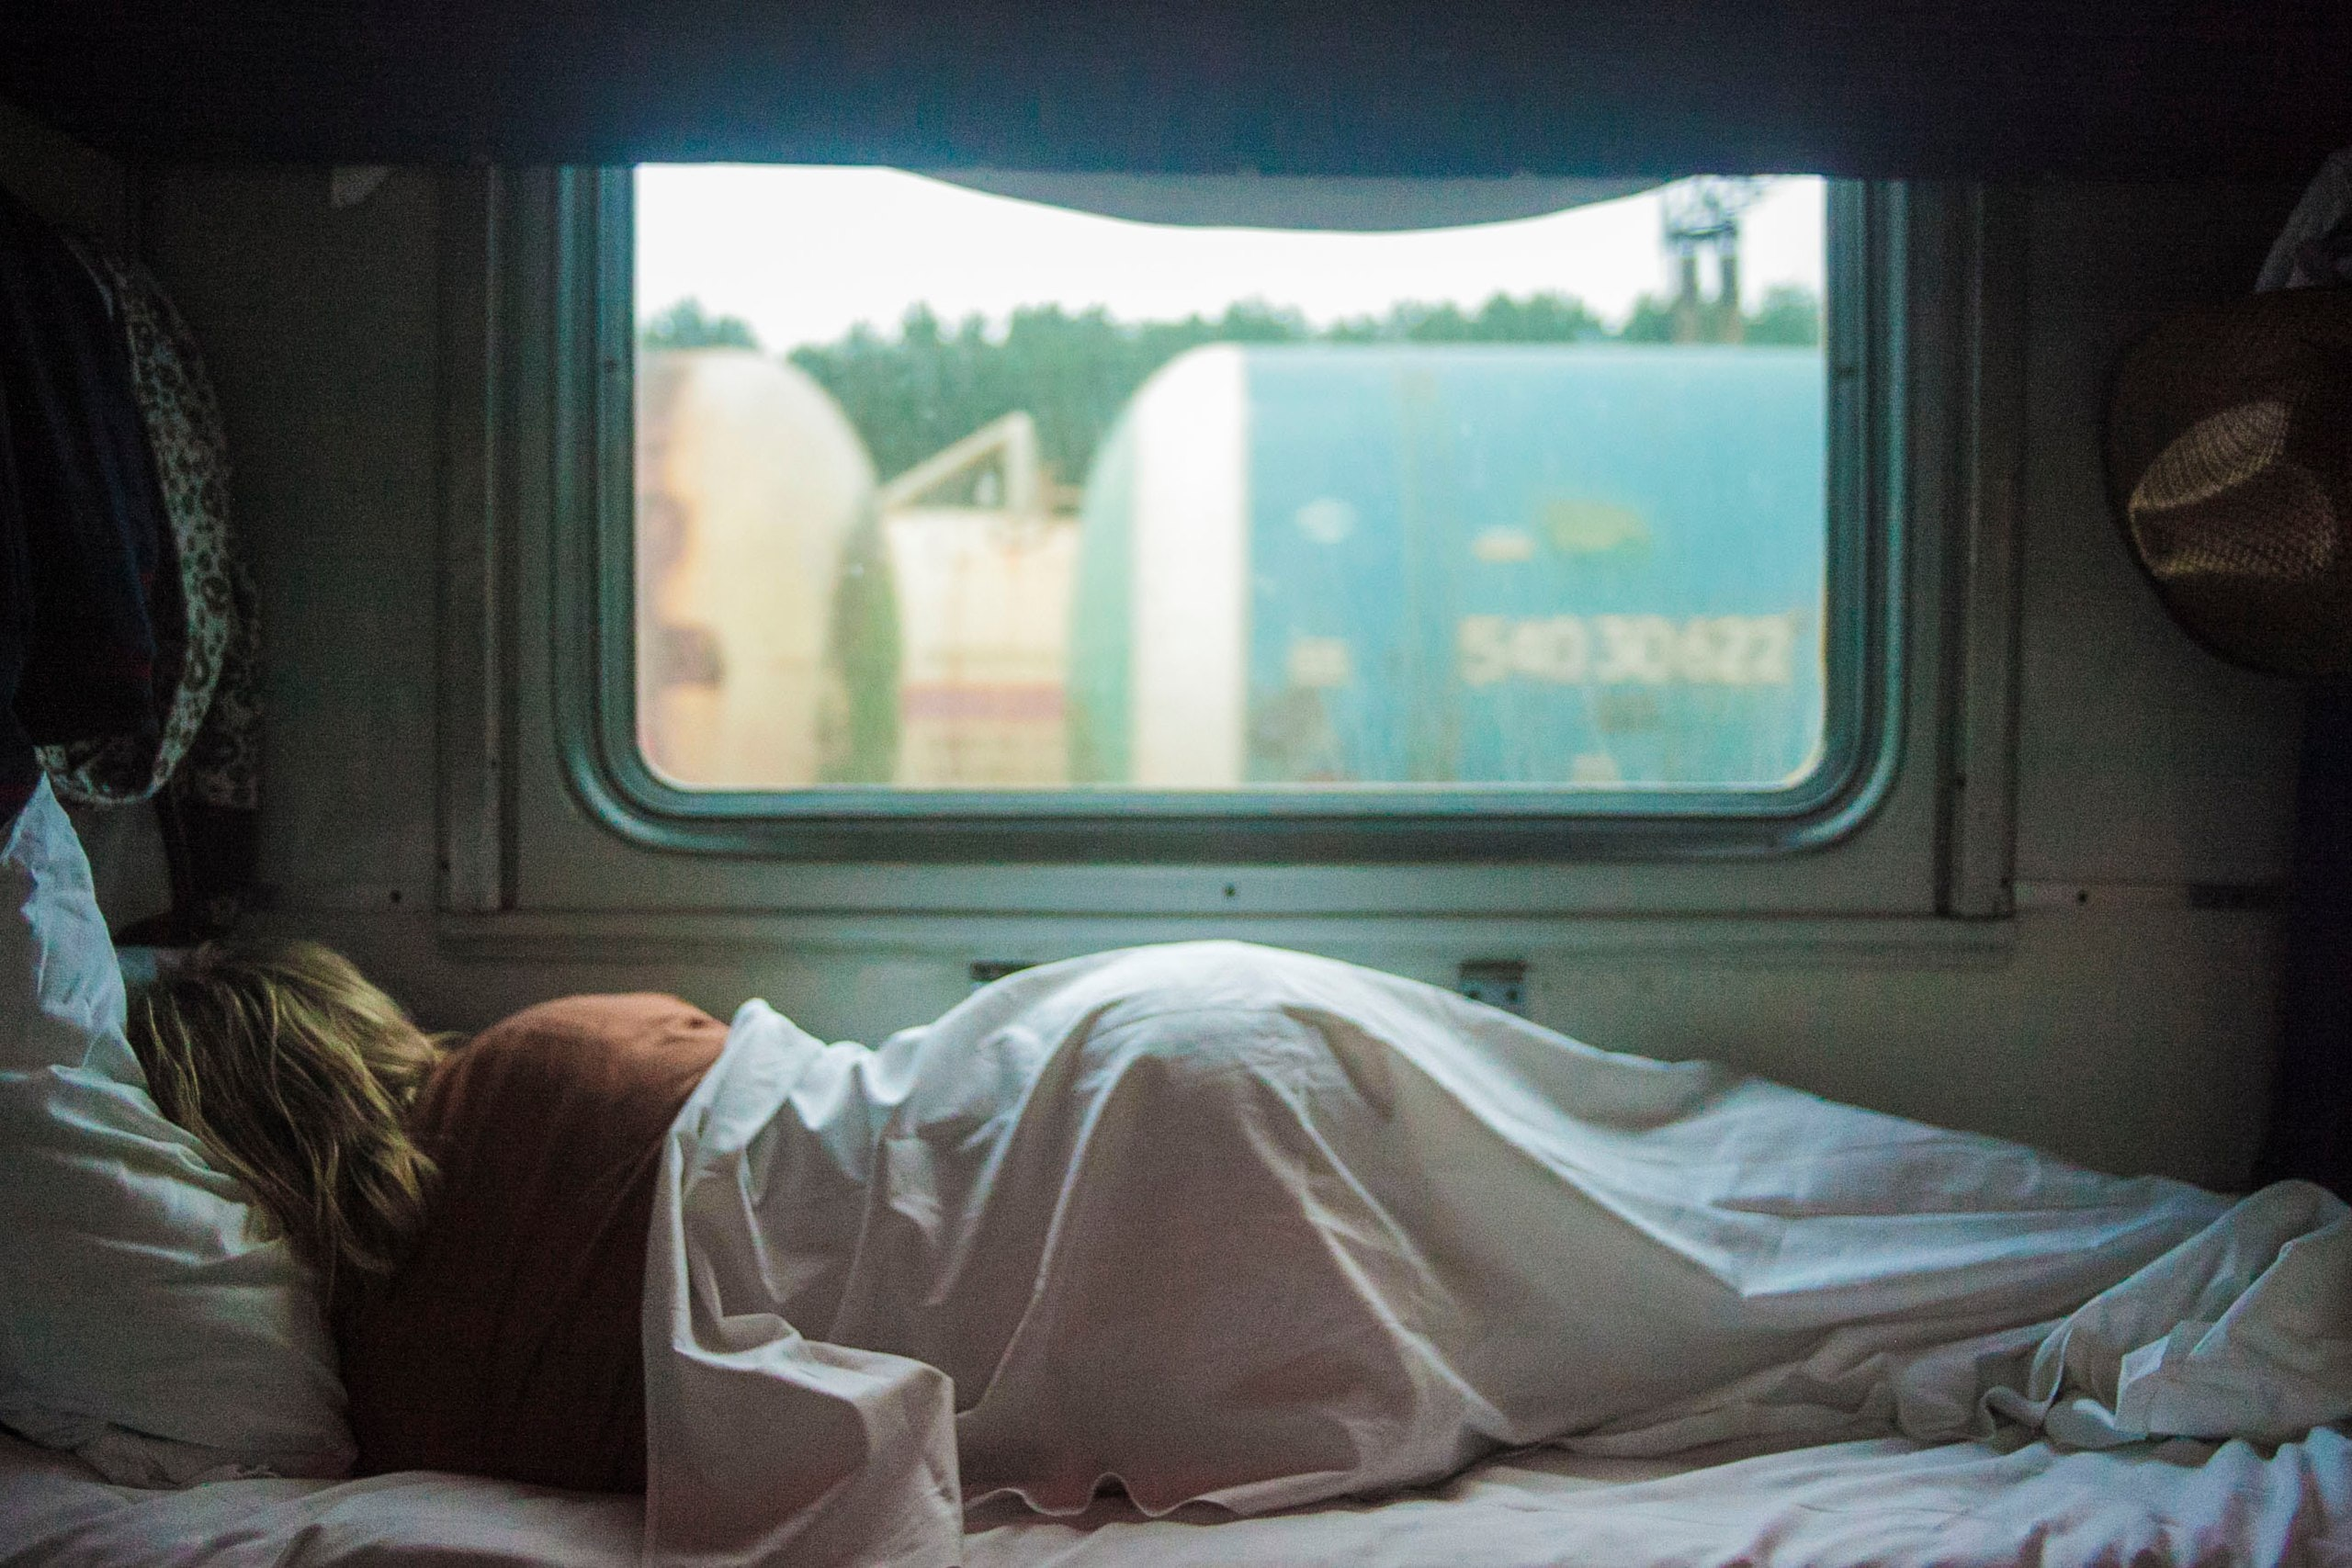 Blonde woman sleeping in pink sheet bed next to window in daytime Penza